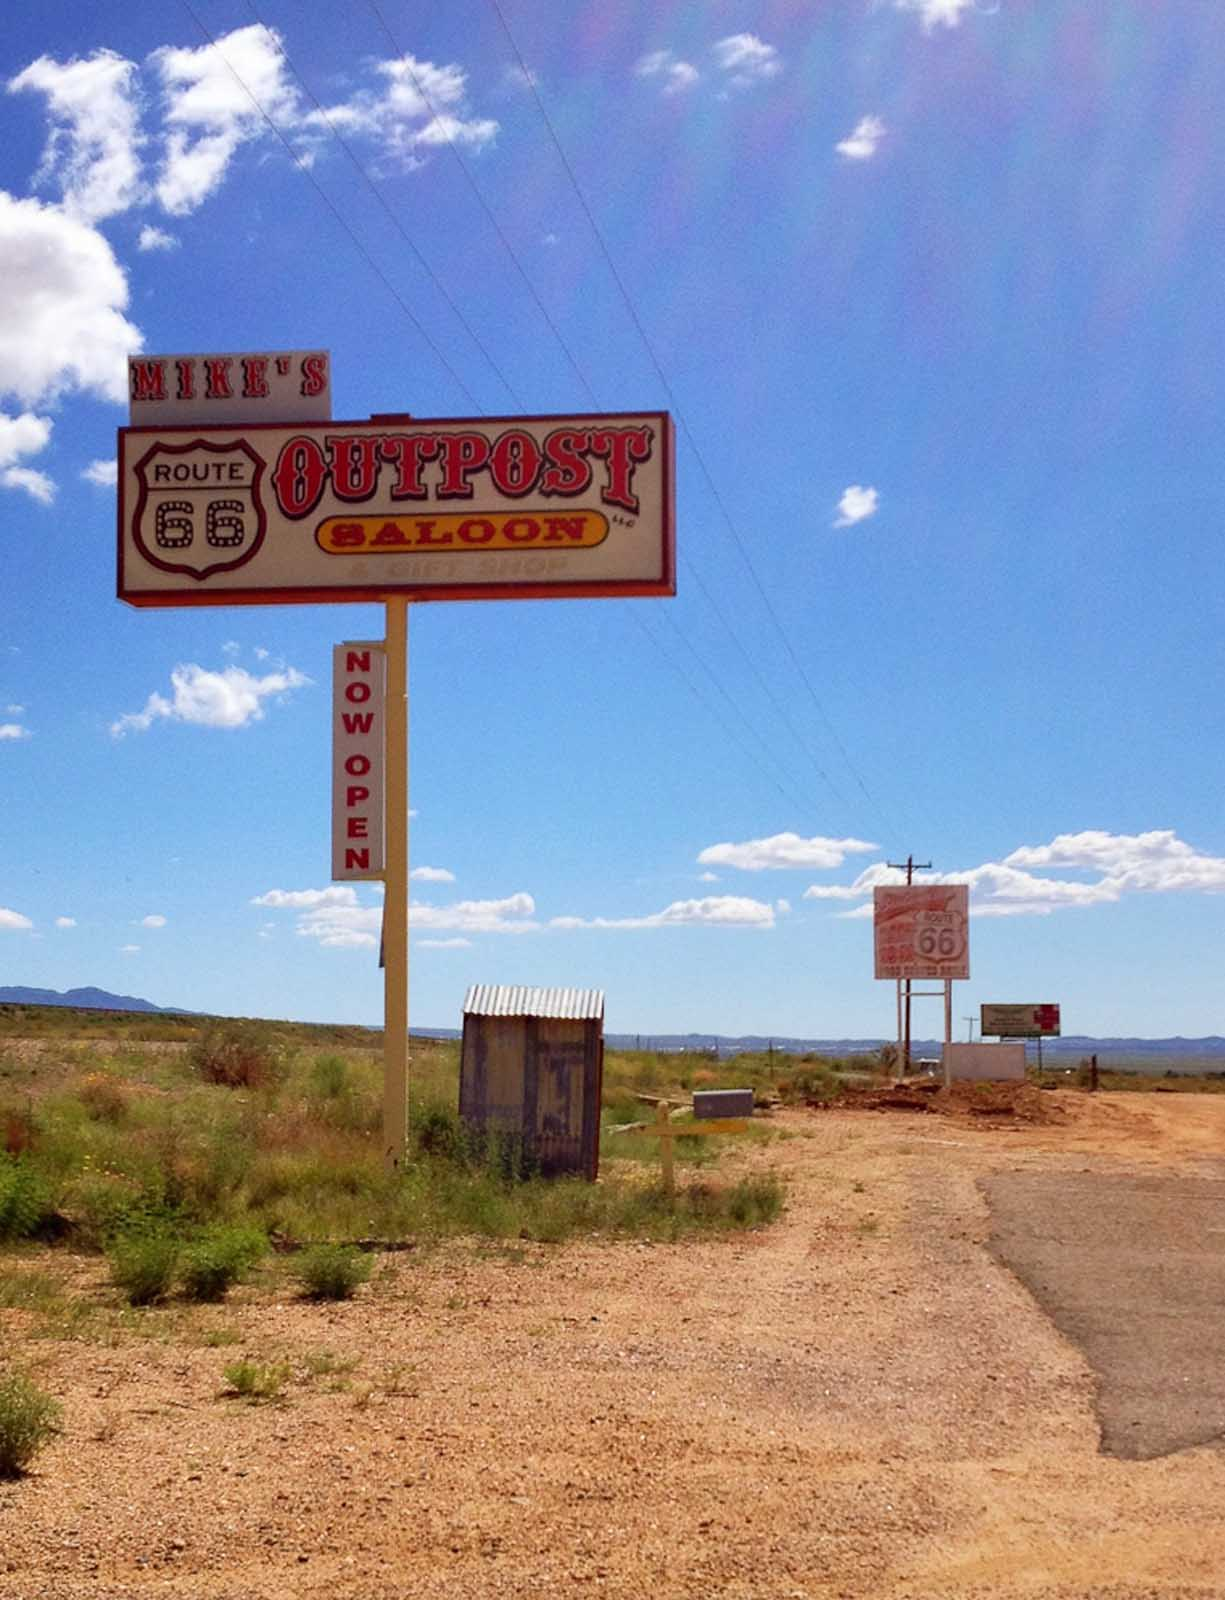 an outpost saloon on route 66